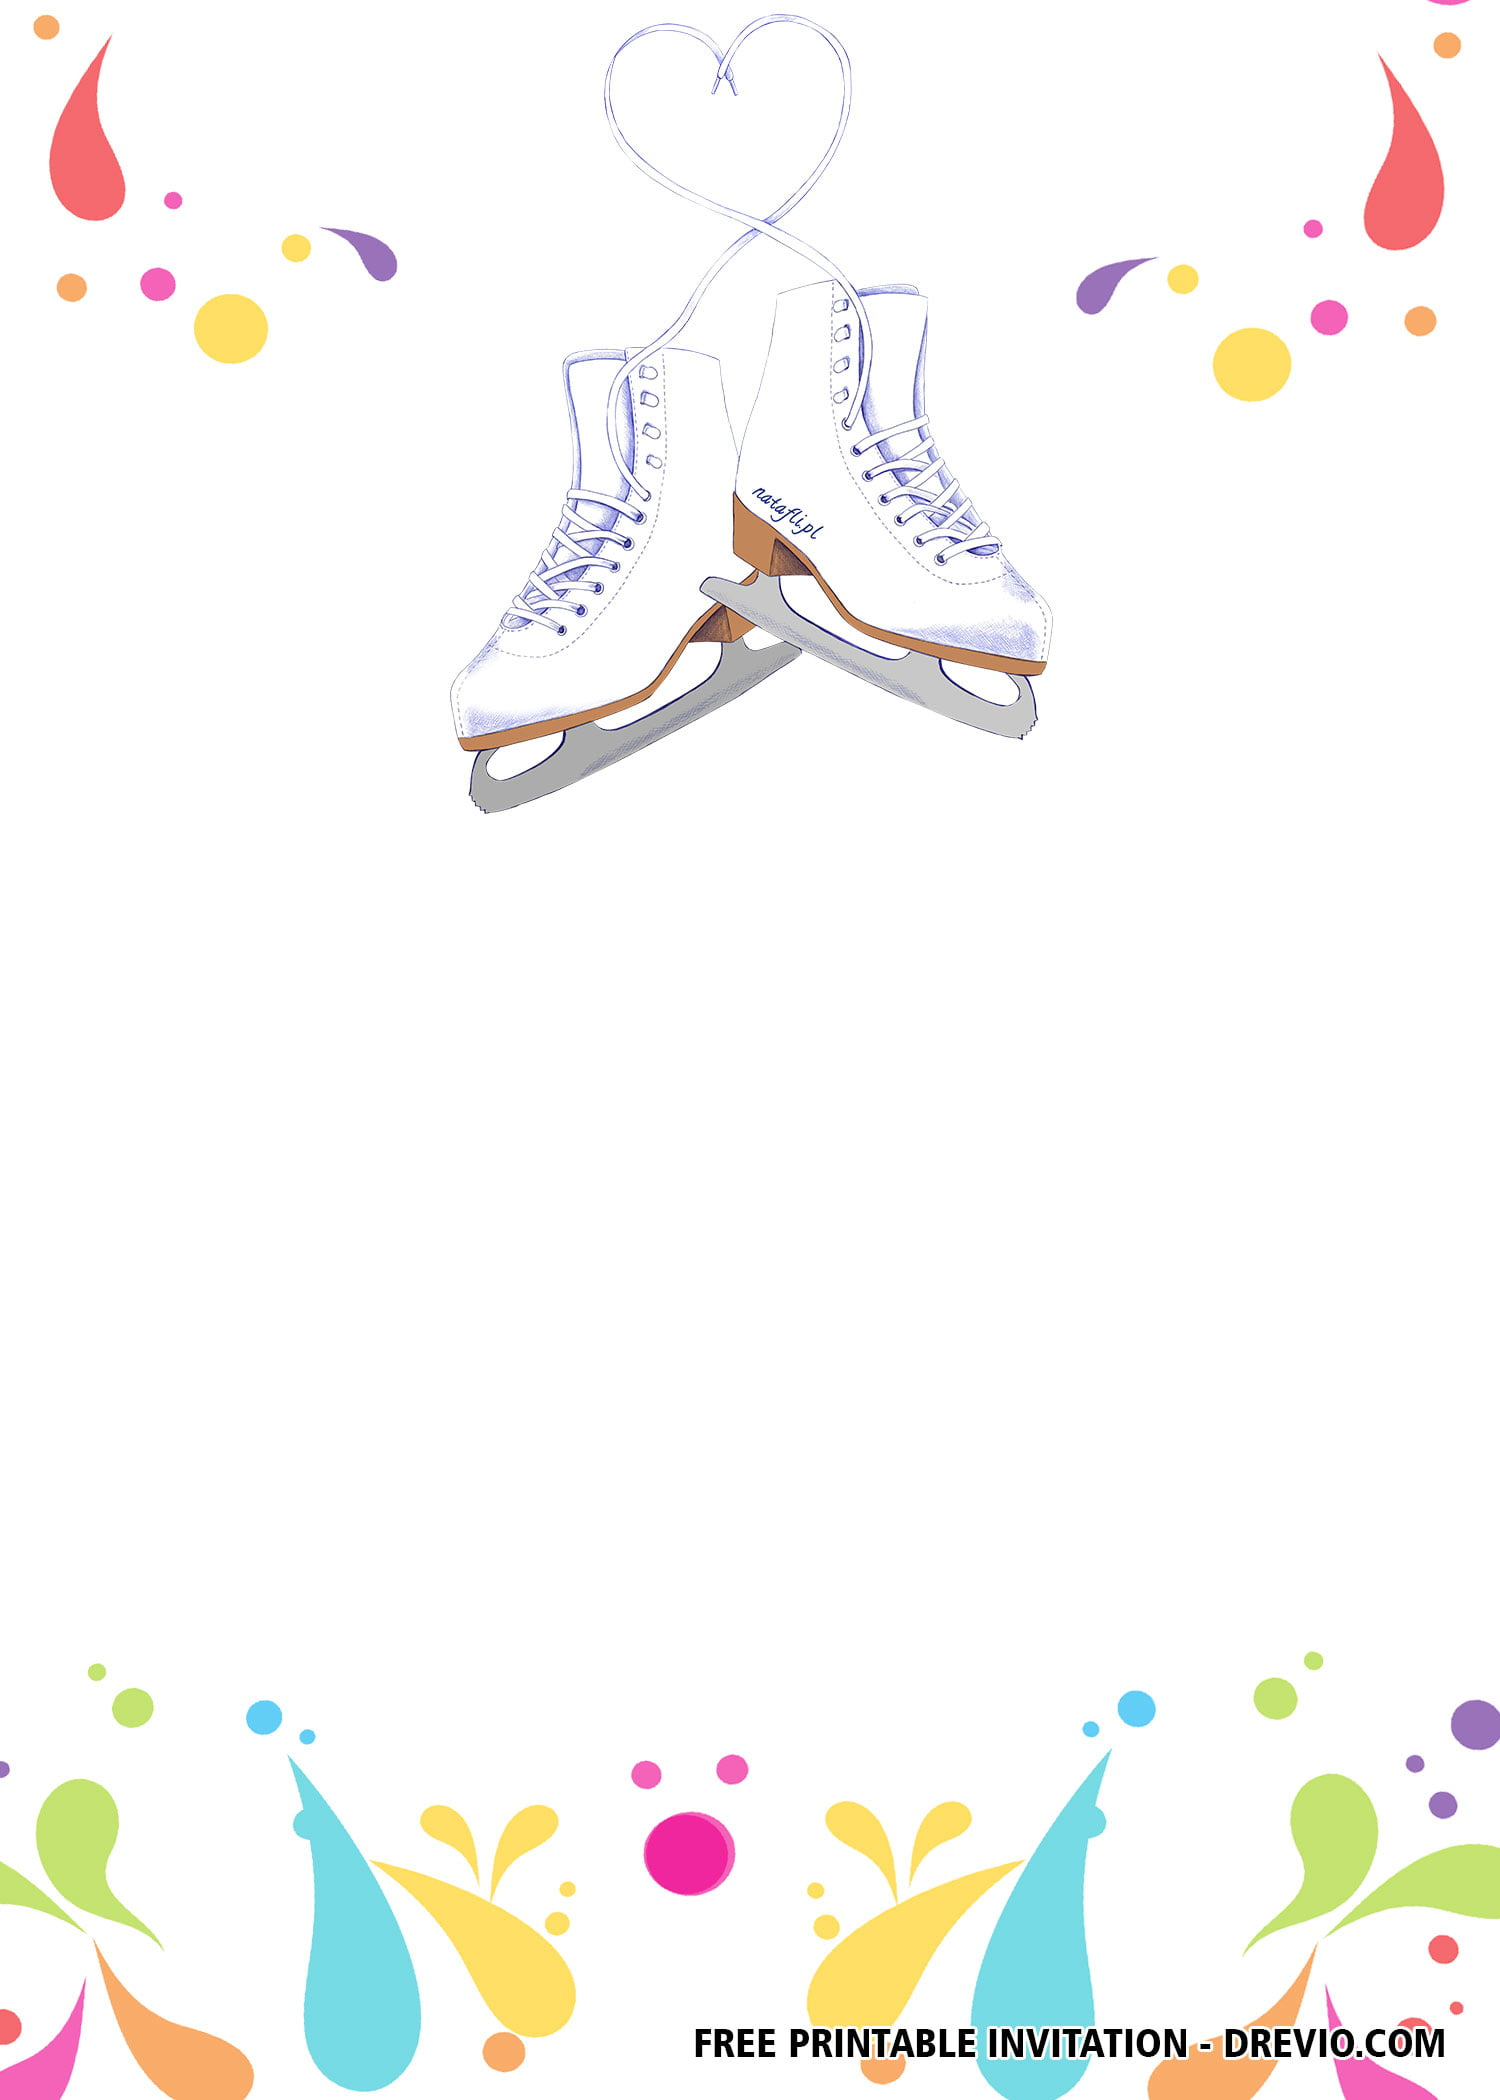 picture relating to Hockey Skate Template Free Printable named Absolutely free Ice Skating Invitation Templates Absolutely free Printable